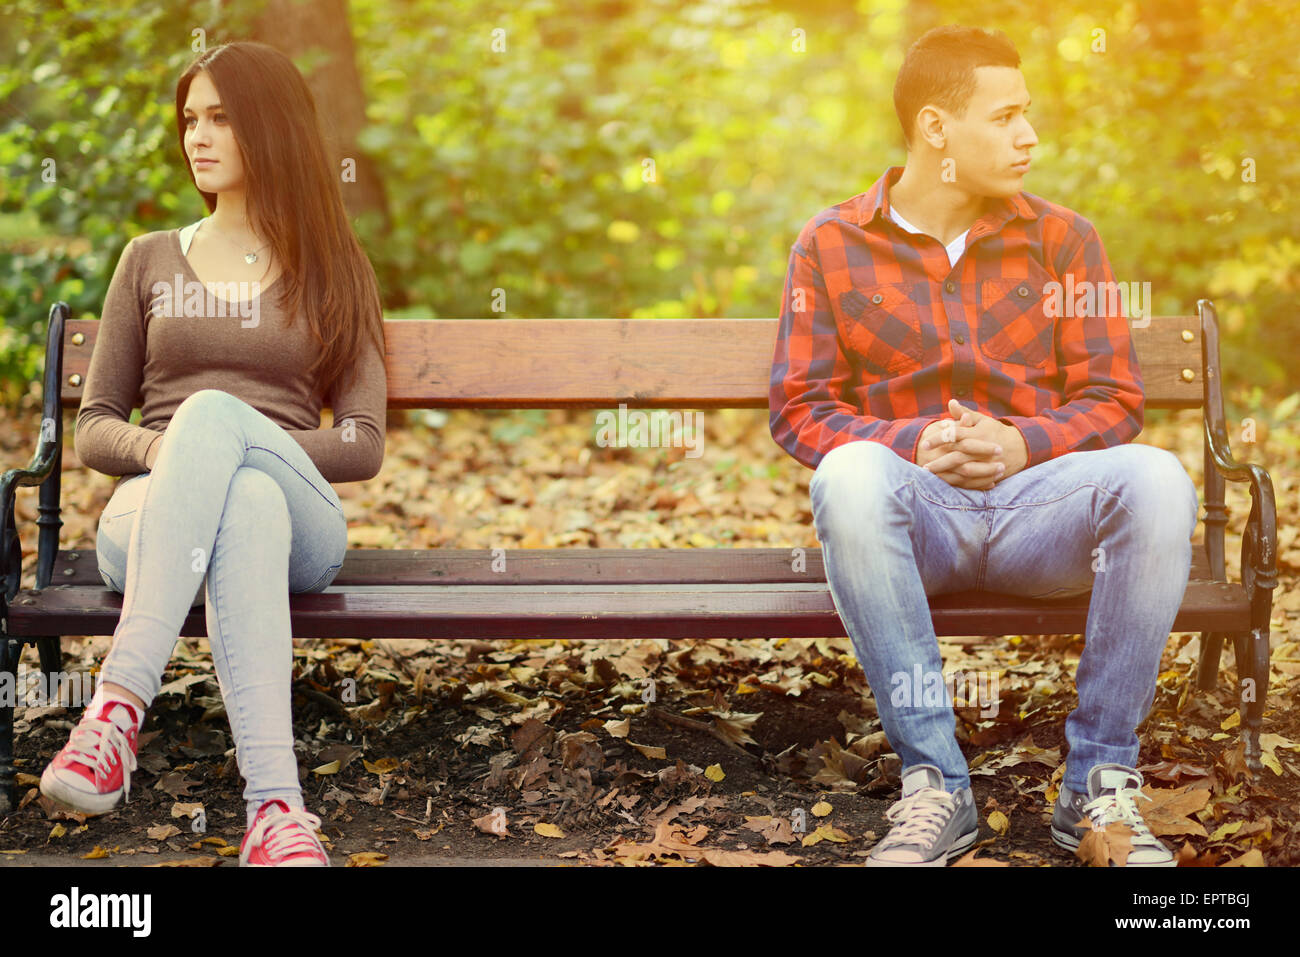 Young couple in quarrel sitting on bench in park - Stock Image